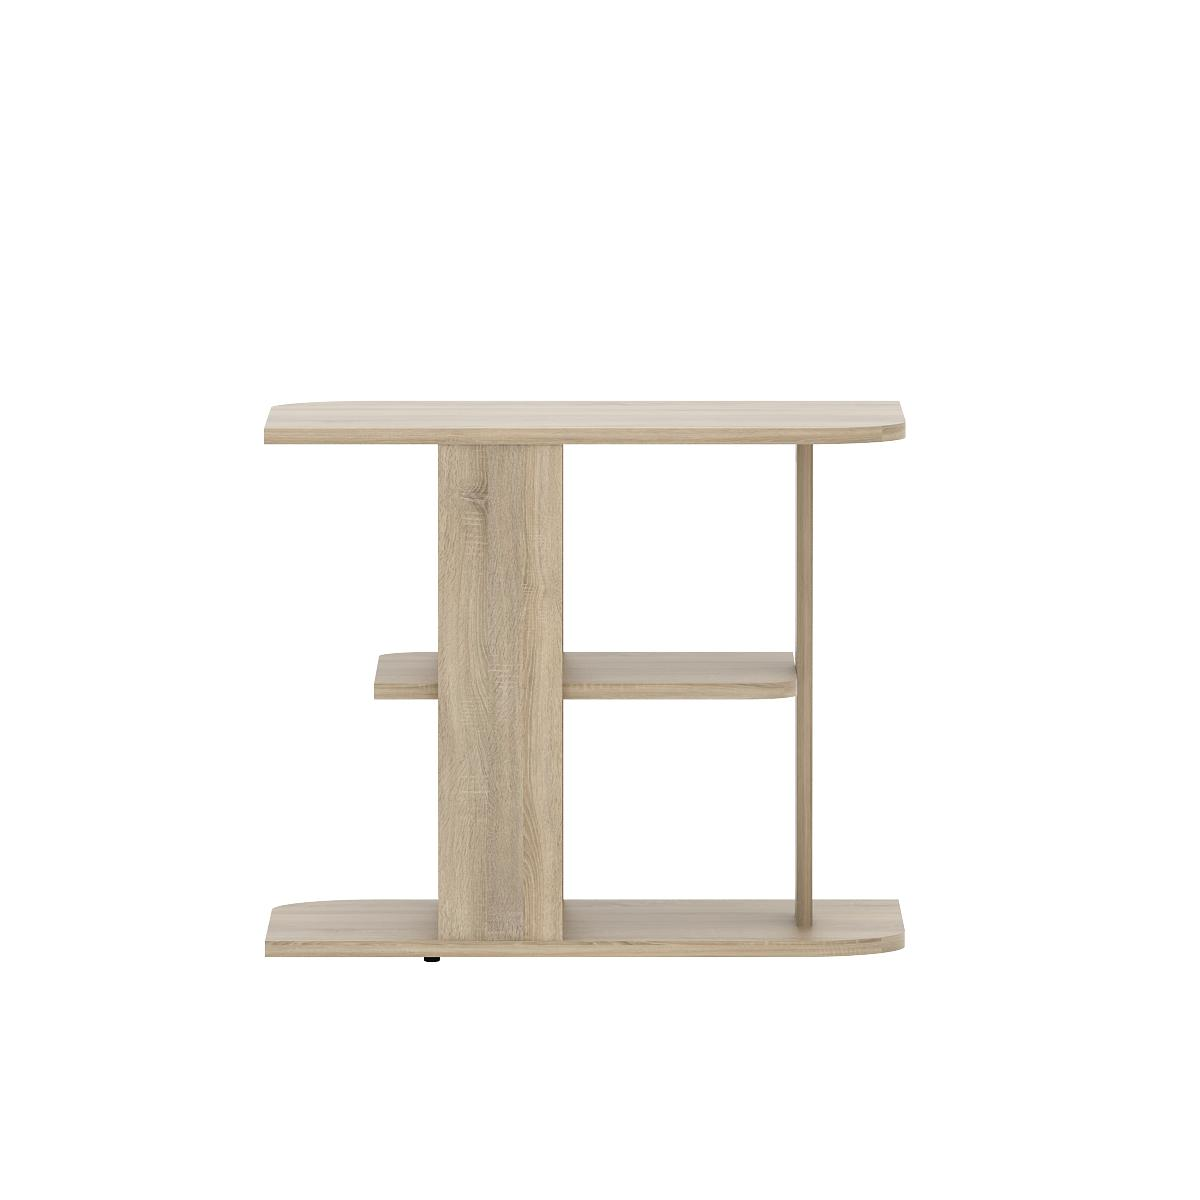 Pro Design Small Table Sel (SELST)